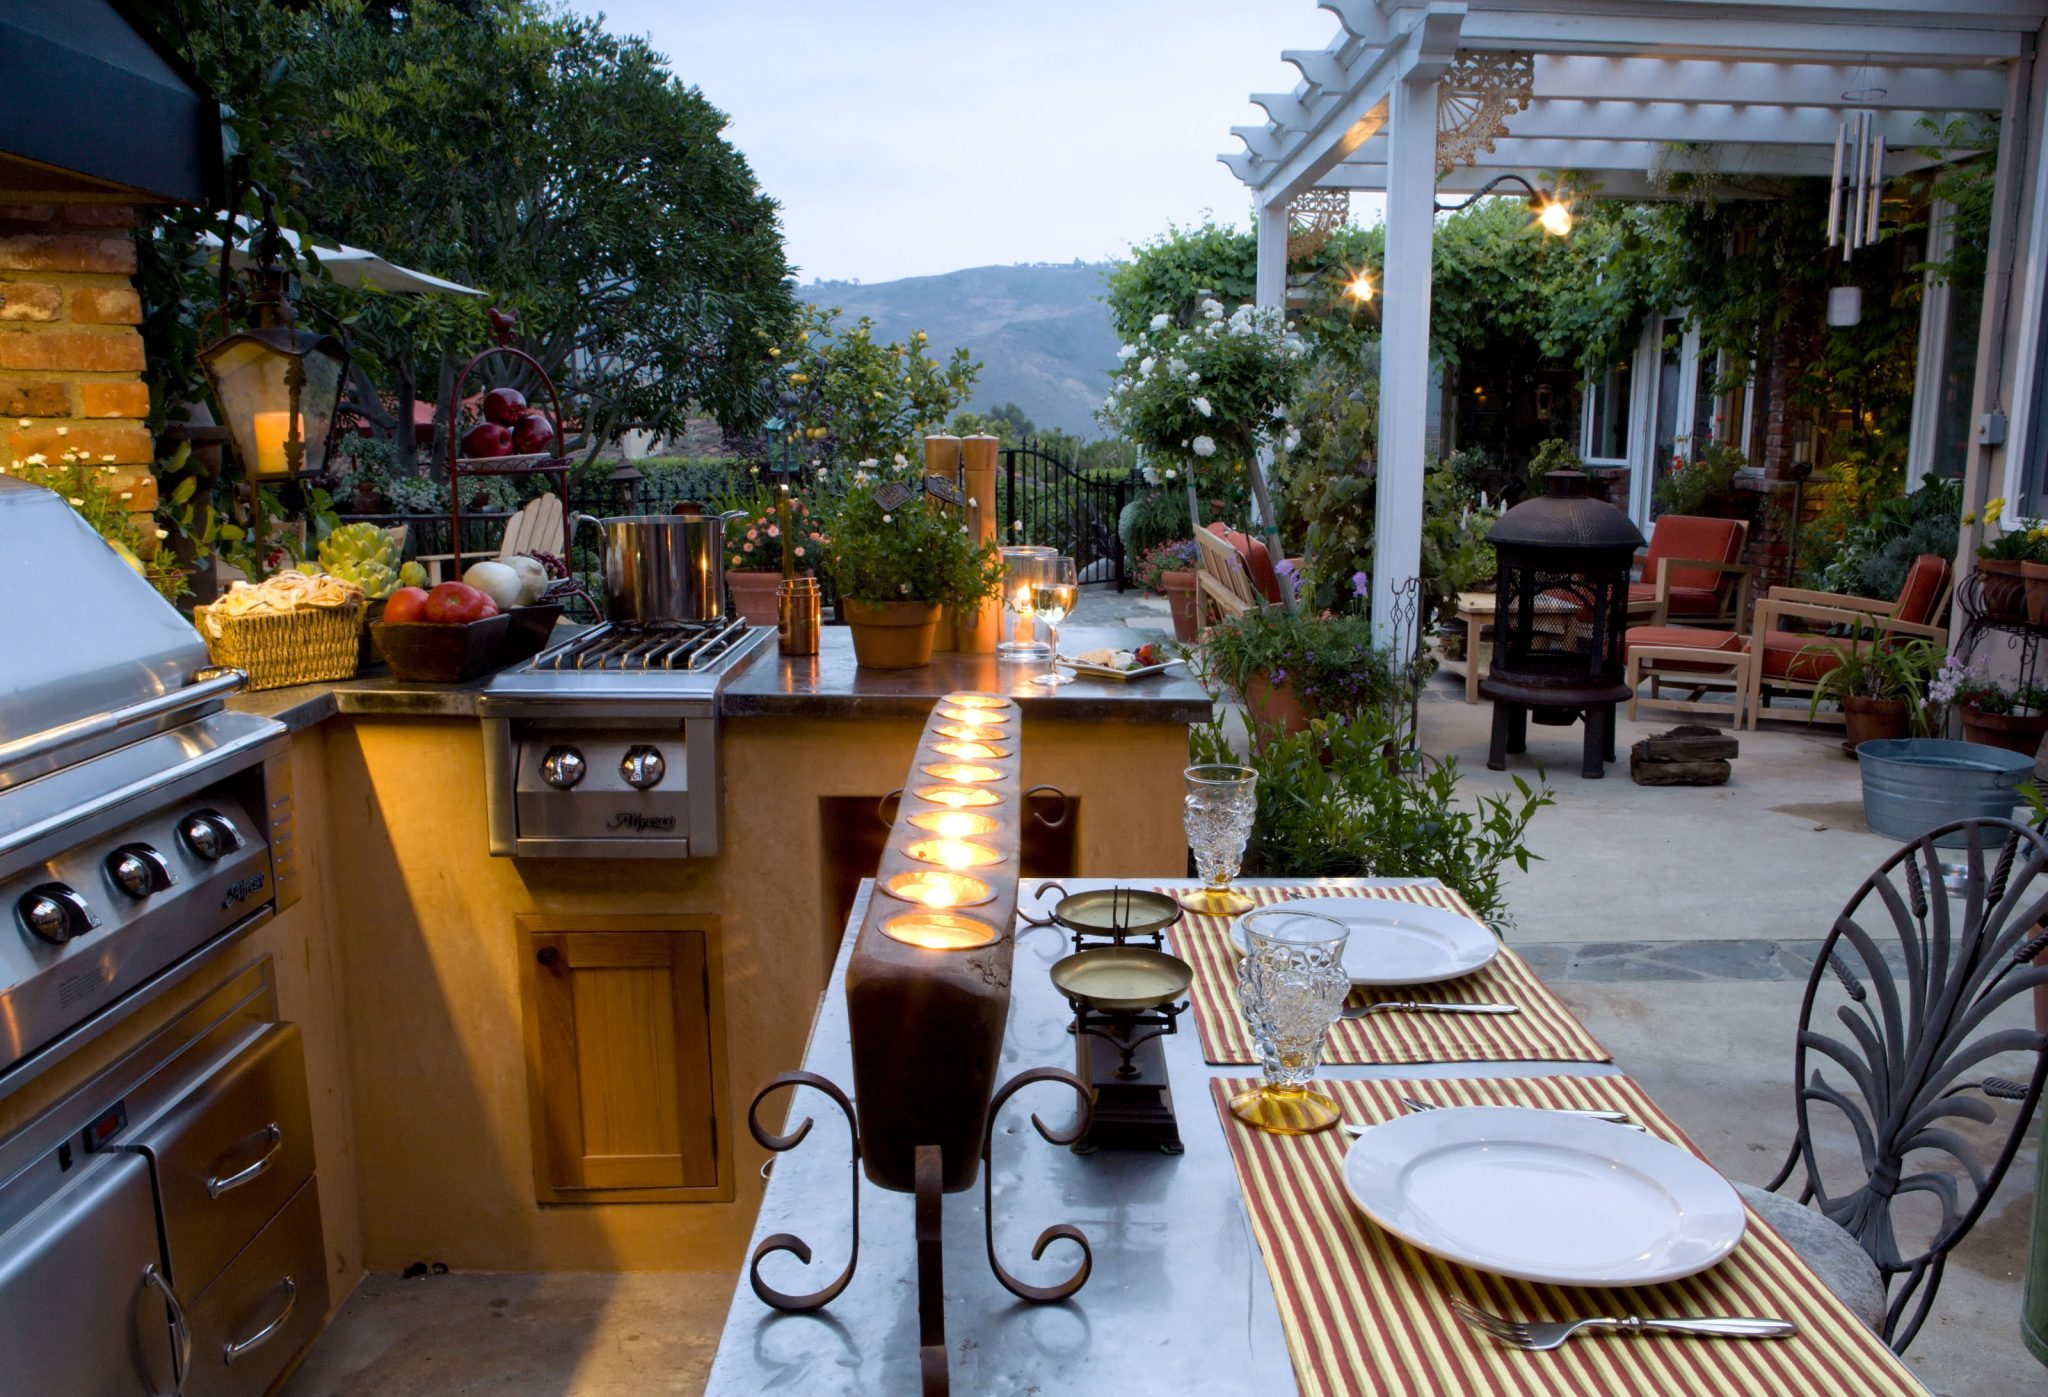 The Outdoor Kitchen Evolves – 5 tips for creating the ultimate in al fresco dining.